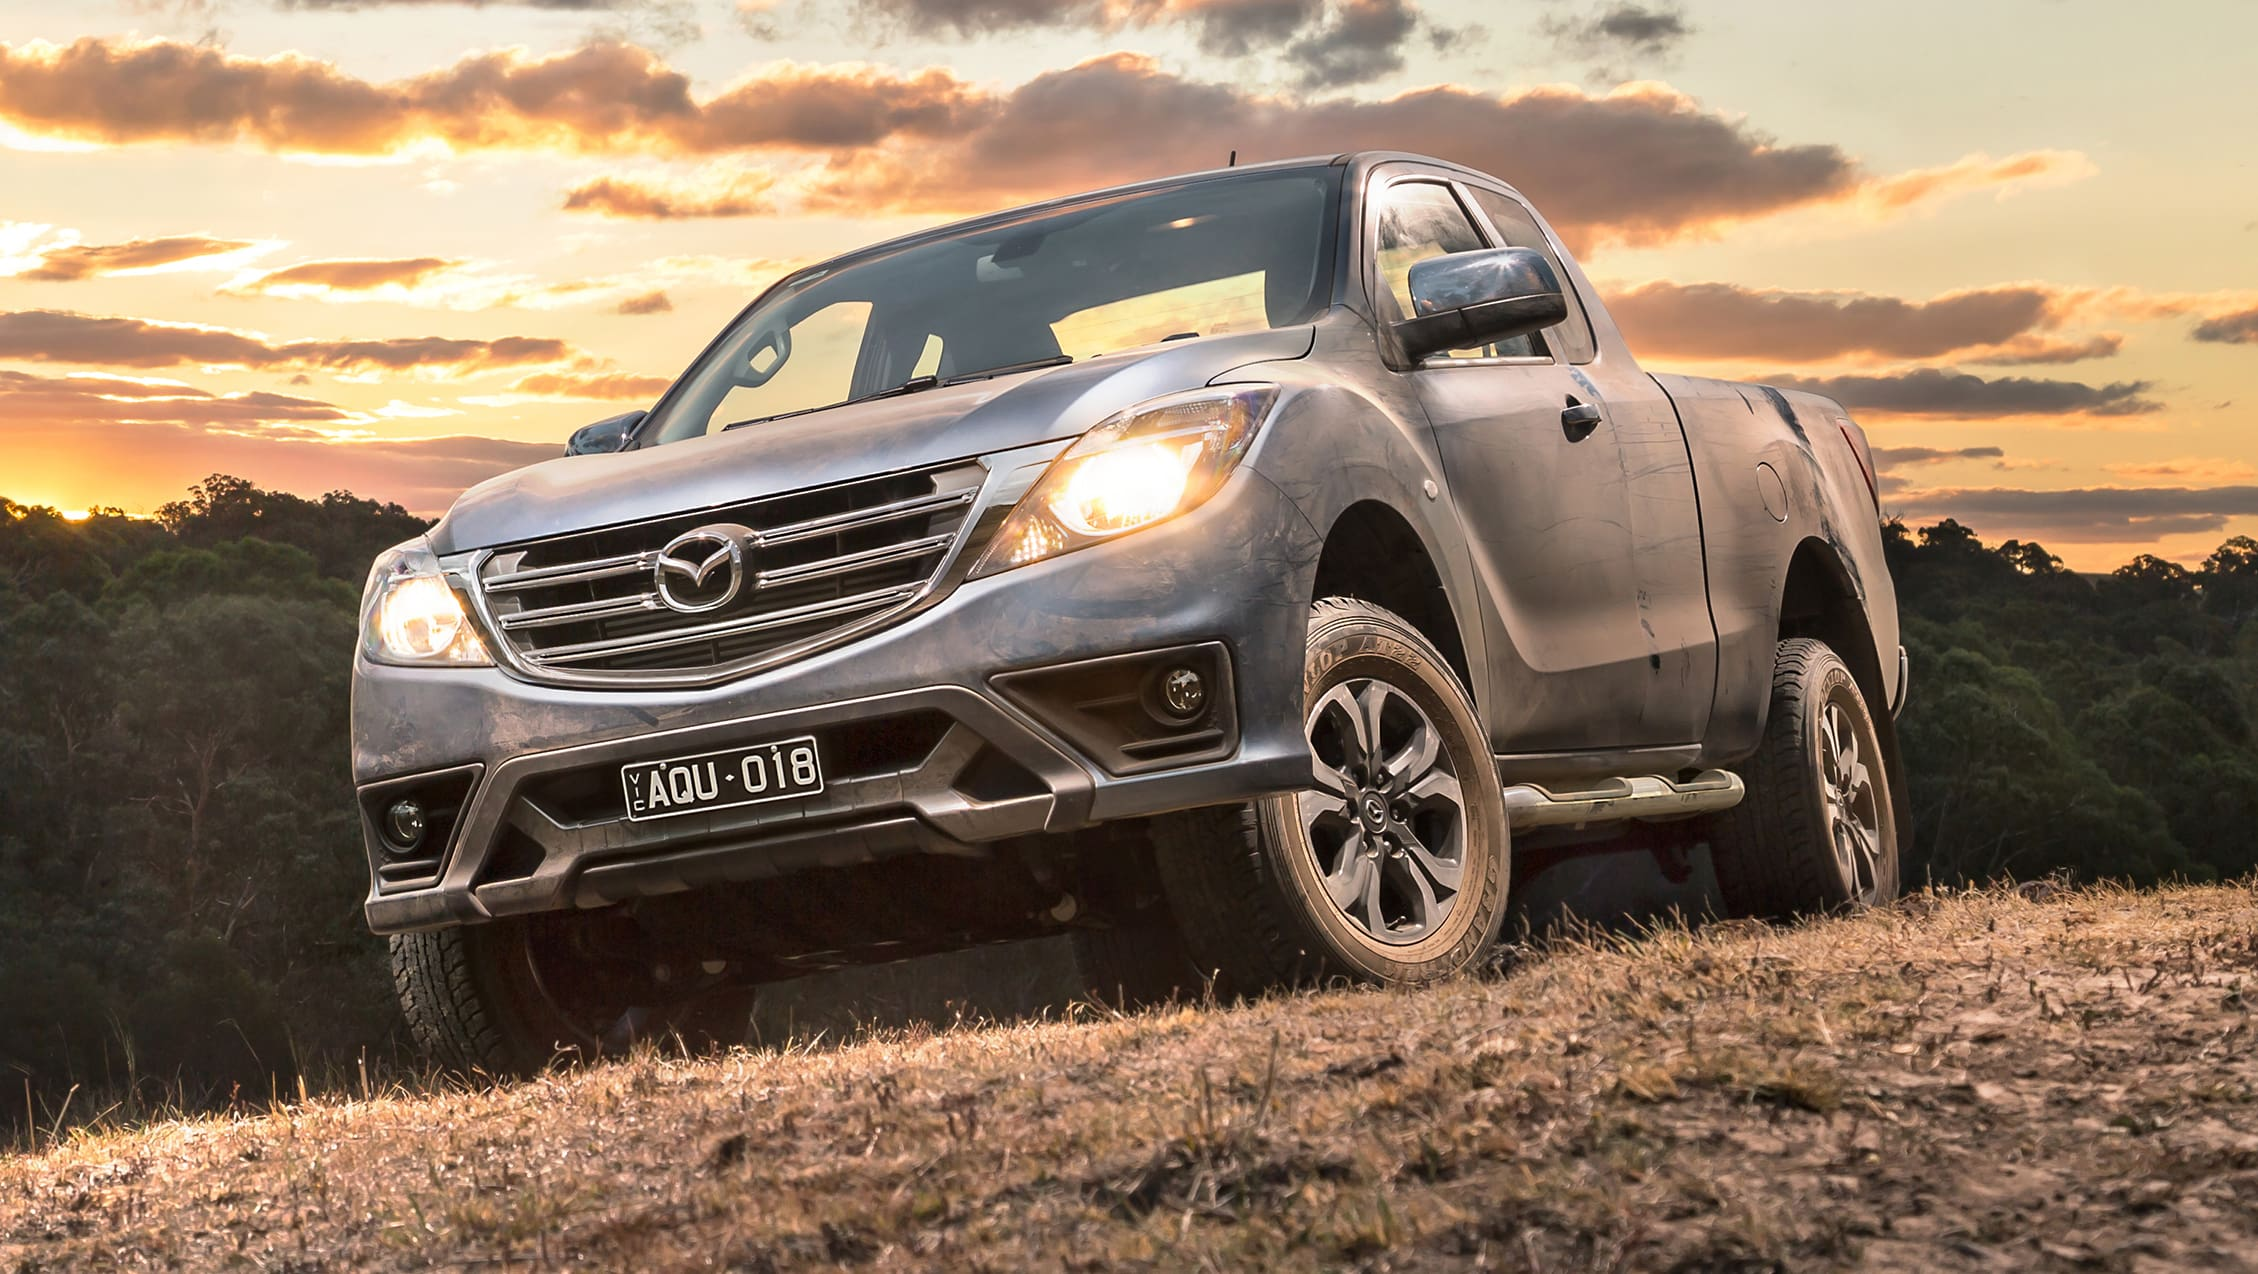 2019 Mazda Bt 50 Usa Release Price Specs And Changes >> Mazda Bt 50 2020 To Look Tougher More Masculine Car